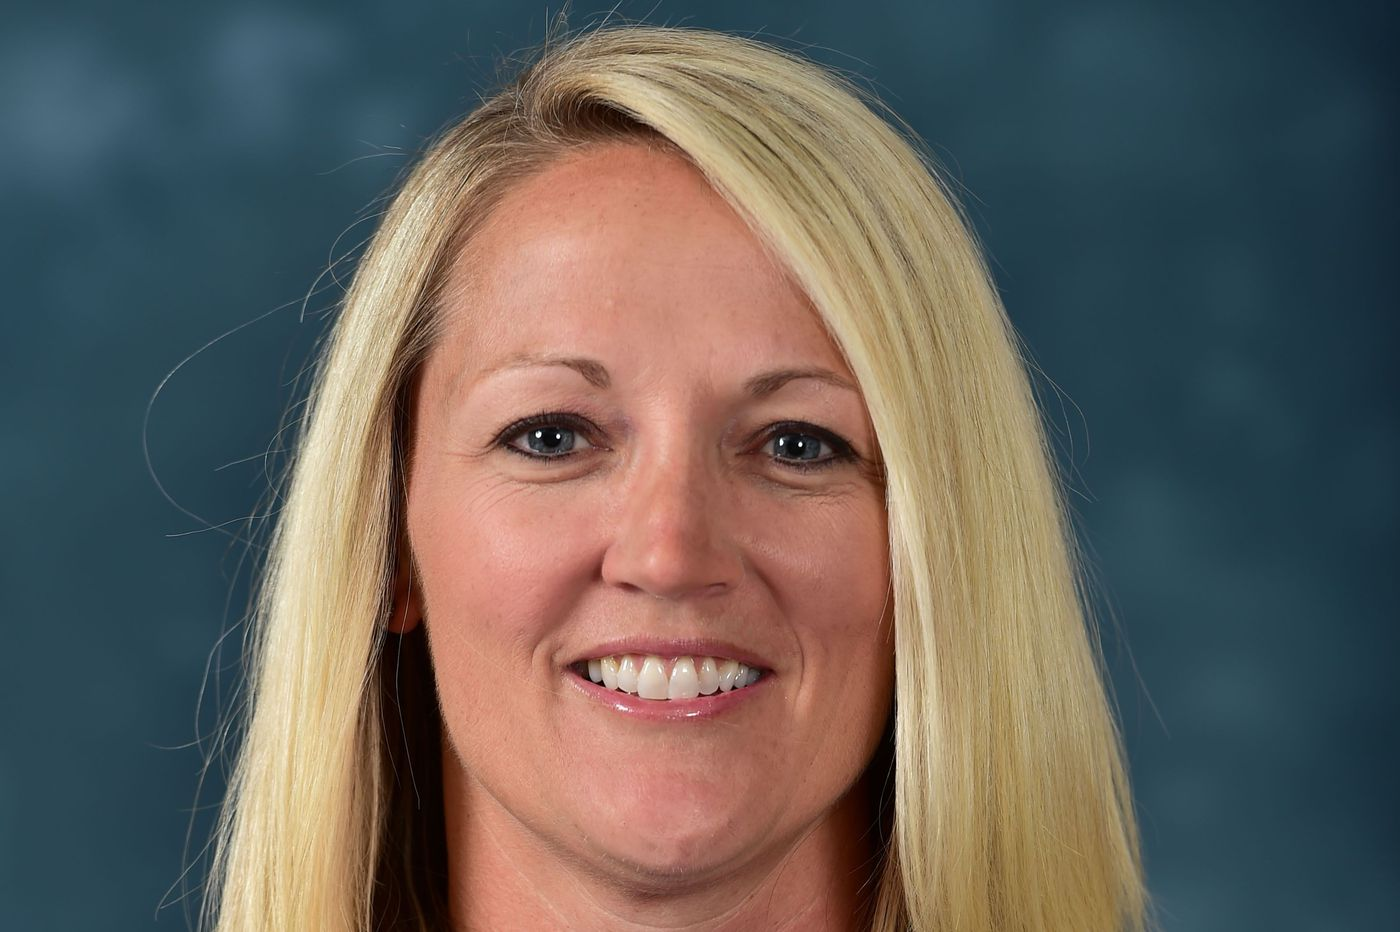 New basketball coach Amy Mallon doesn't plan to change much at Drexel